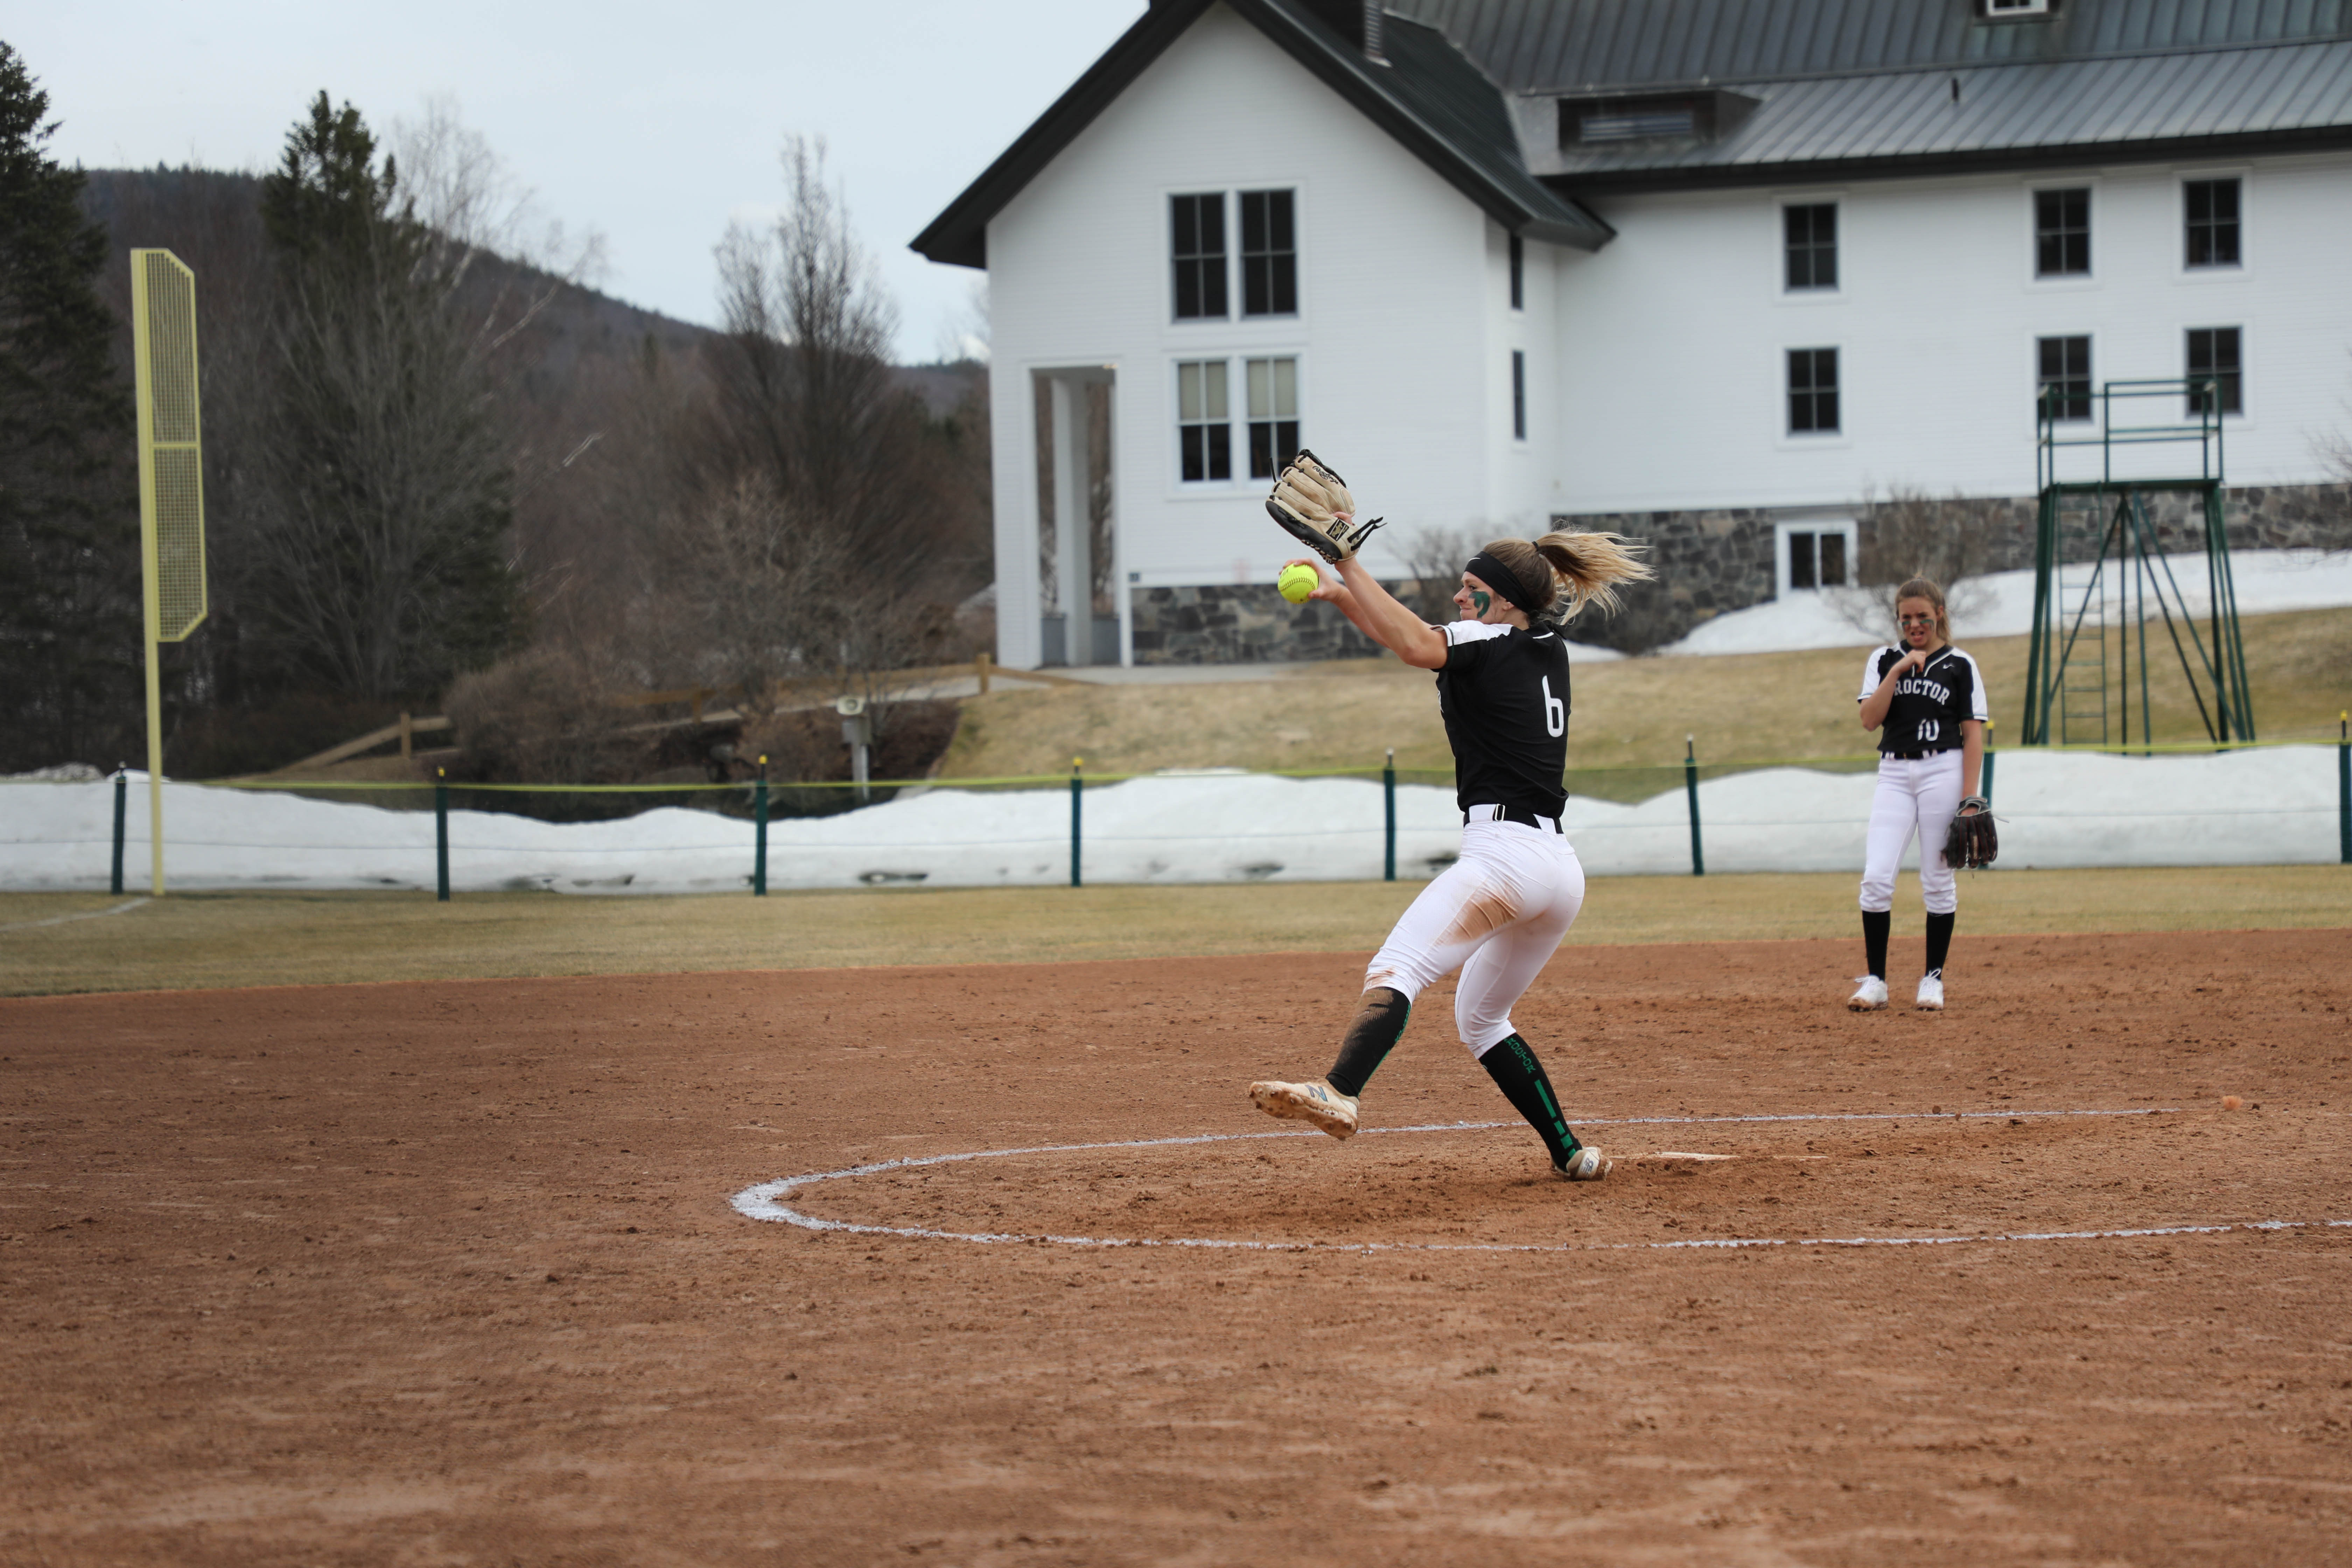 Proctor Academy Athletics Softball